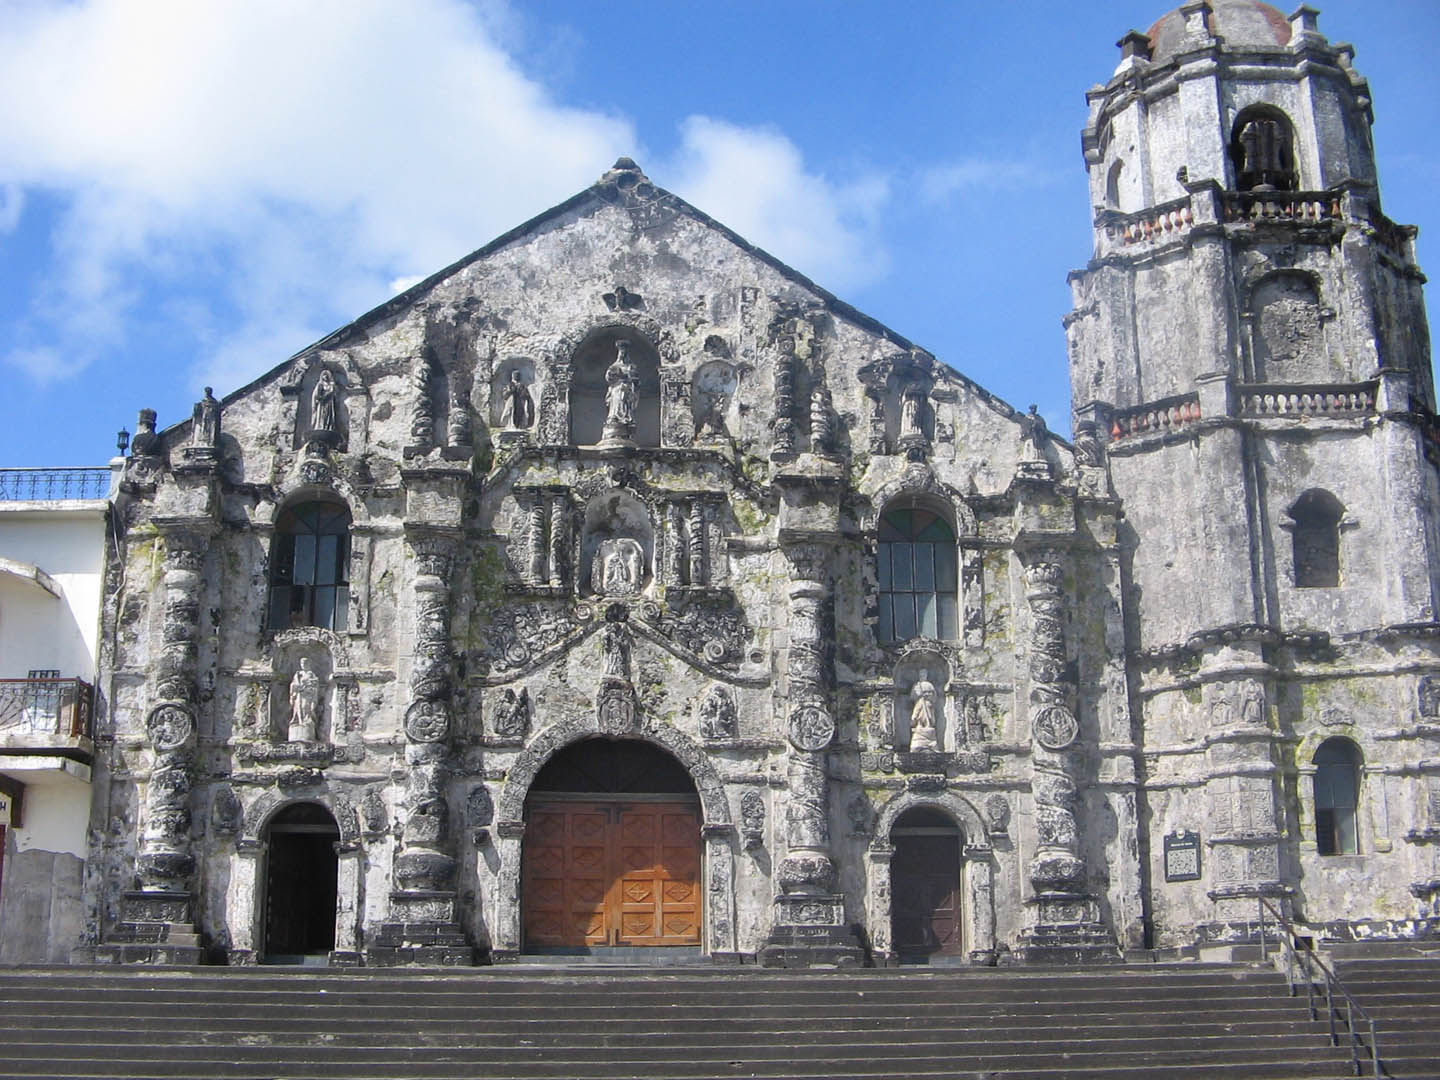 http://vacationleave.files.wordpress.com/2009/05/daraga-church3.jpg